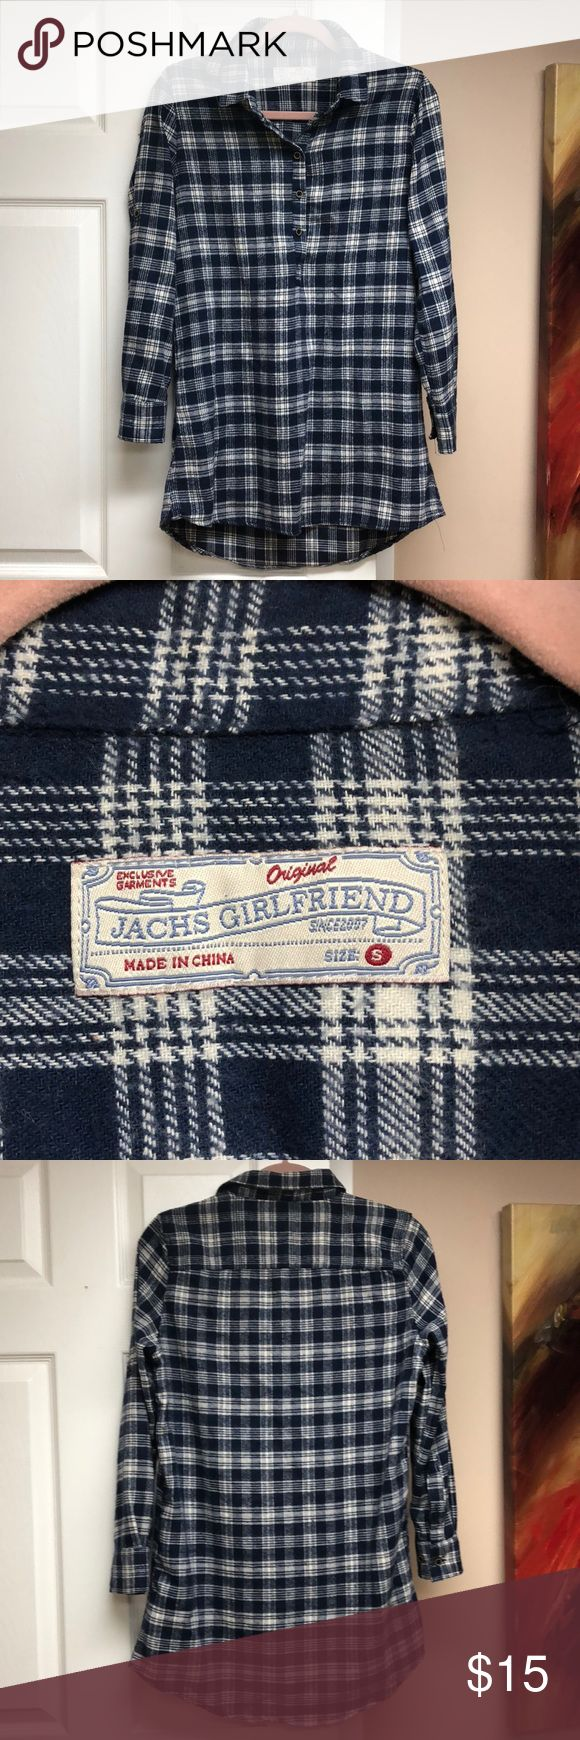 NWOT⚠️  Navy Plaid Long Pullover & Button Flannel Women's Jachs Girlfriend plaid navy flannel in a size small. This is a long length (down to the butt) pullover shirt with buttons halfway down (see 1st pic). It features a navy plaid pattern (the actual navy color is a little brighter than in the photos) with sleeves that can be worn at the wrist or rolled up to the elbow. This shirt has never been worn (new without tags), is in like new condition, and is very soft! All offers are considered…